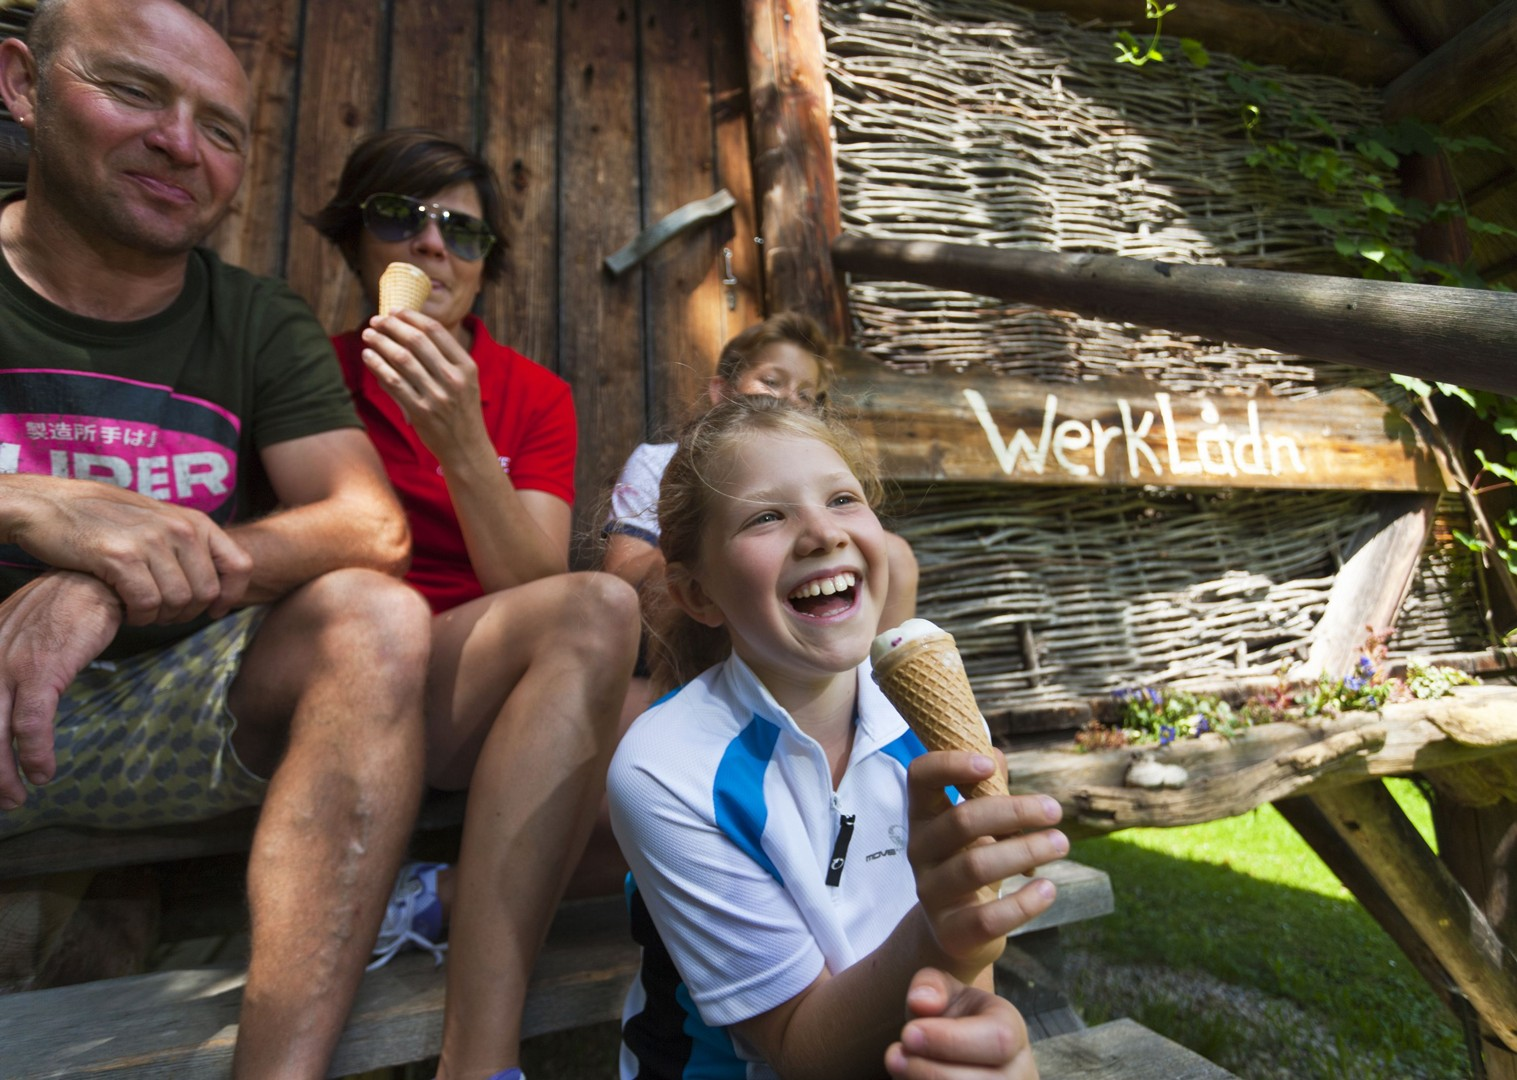 austria-family-biking-tour-cycling-holiday.jpg - Austria - Ten Lakes Tour - Self-Guided Family Cycling Holiday - Family Cycling